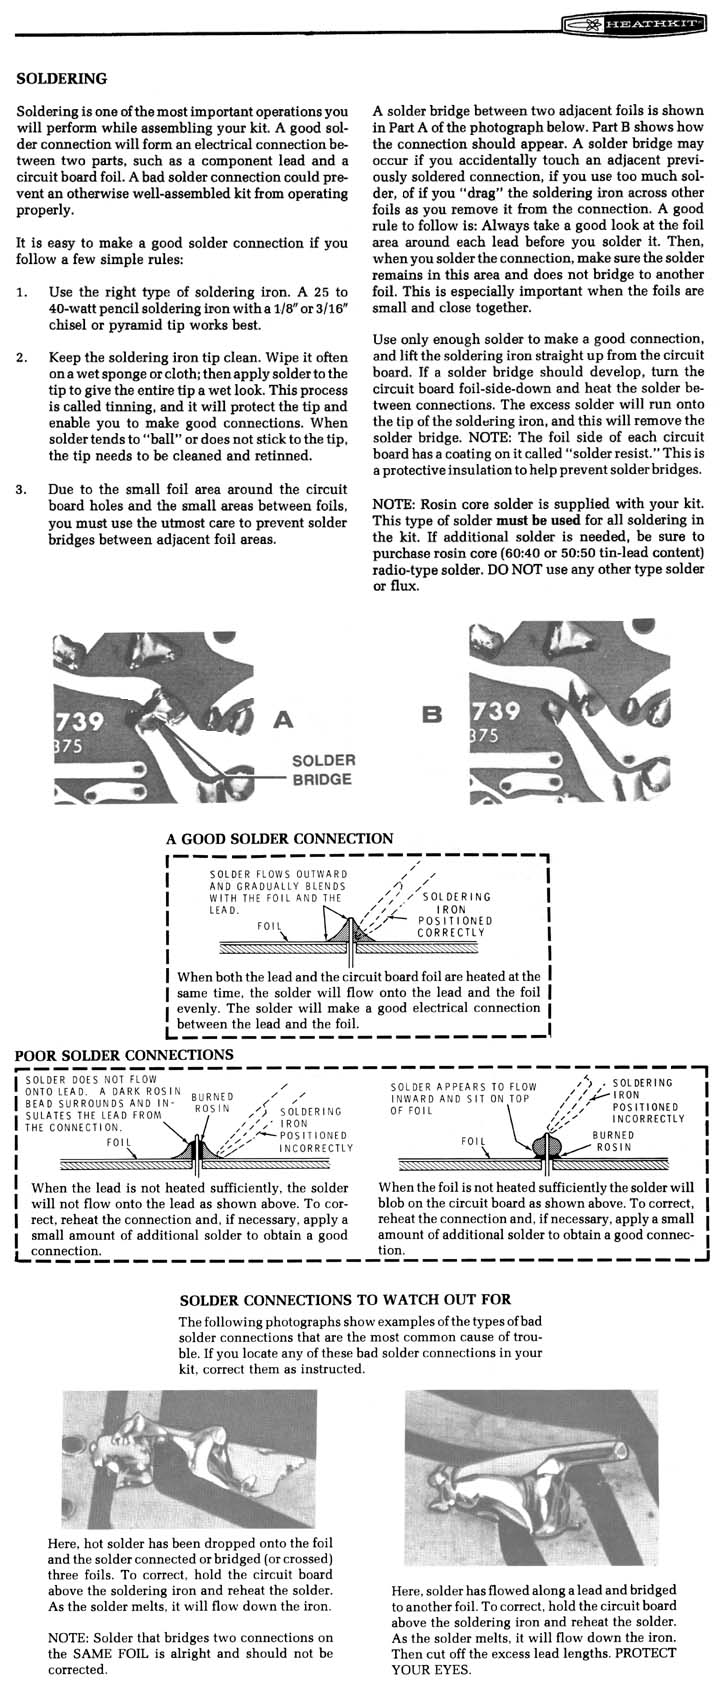 1991 940 Volvo Engine Diagram Circuits And Relays See Also The Excellent Heathkit Discussion